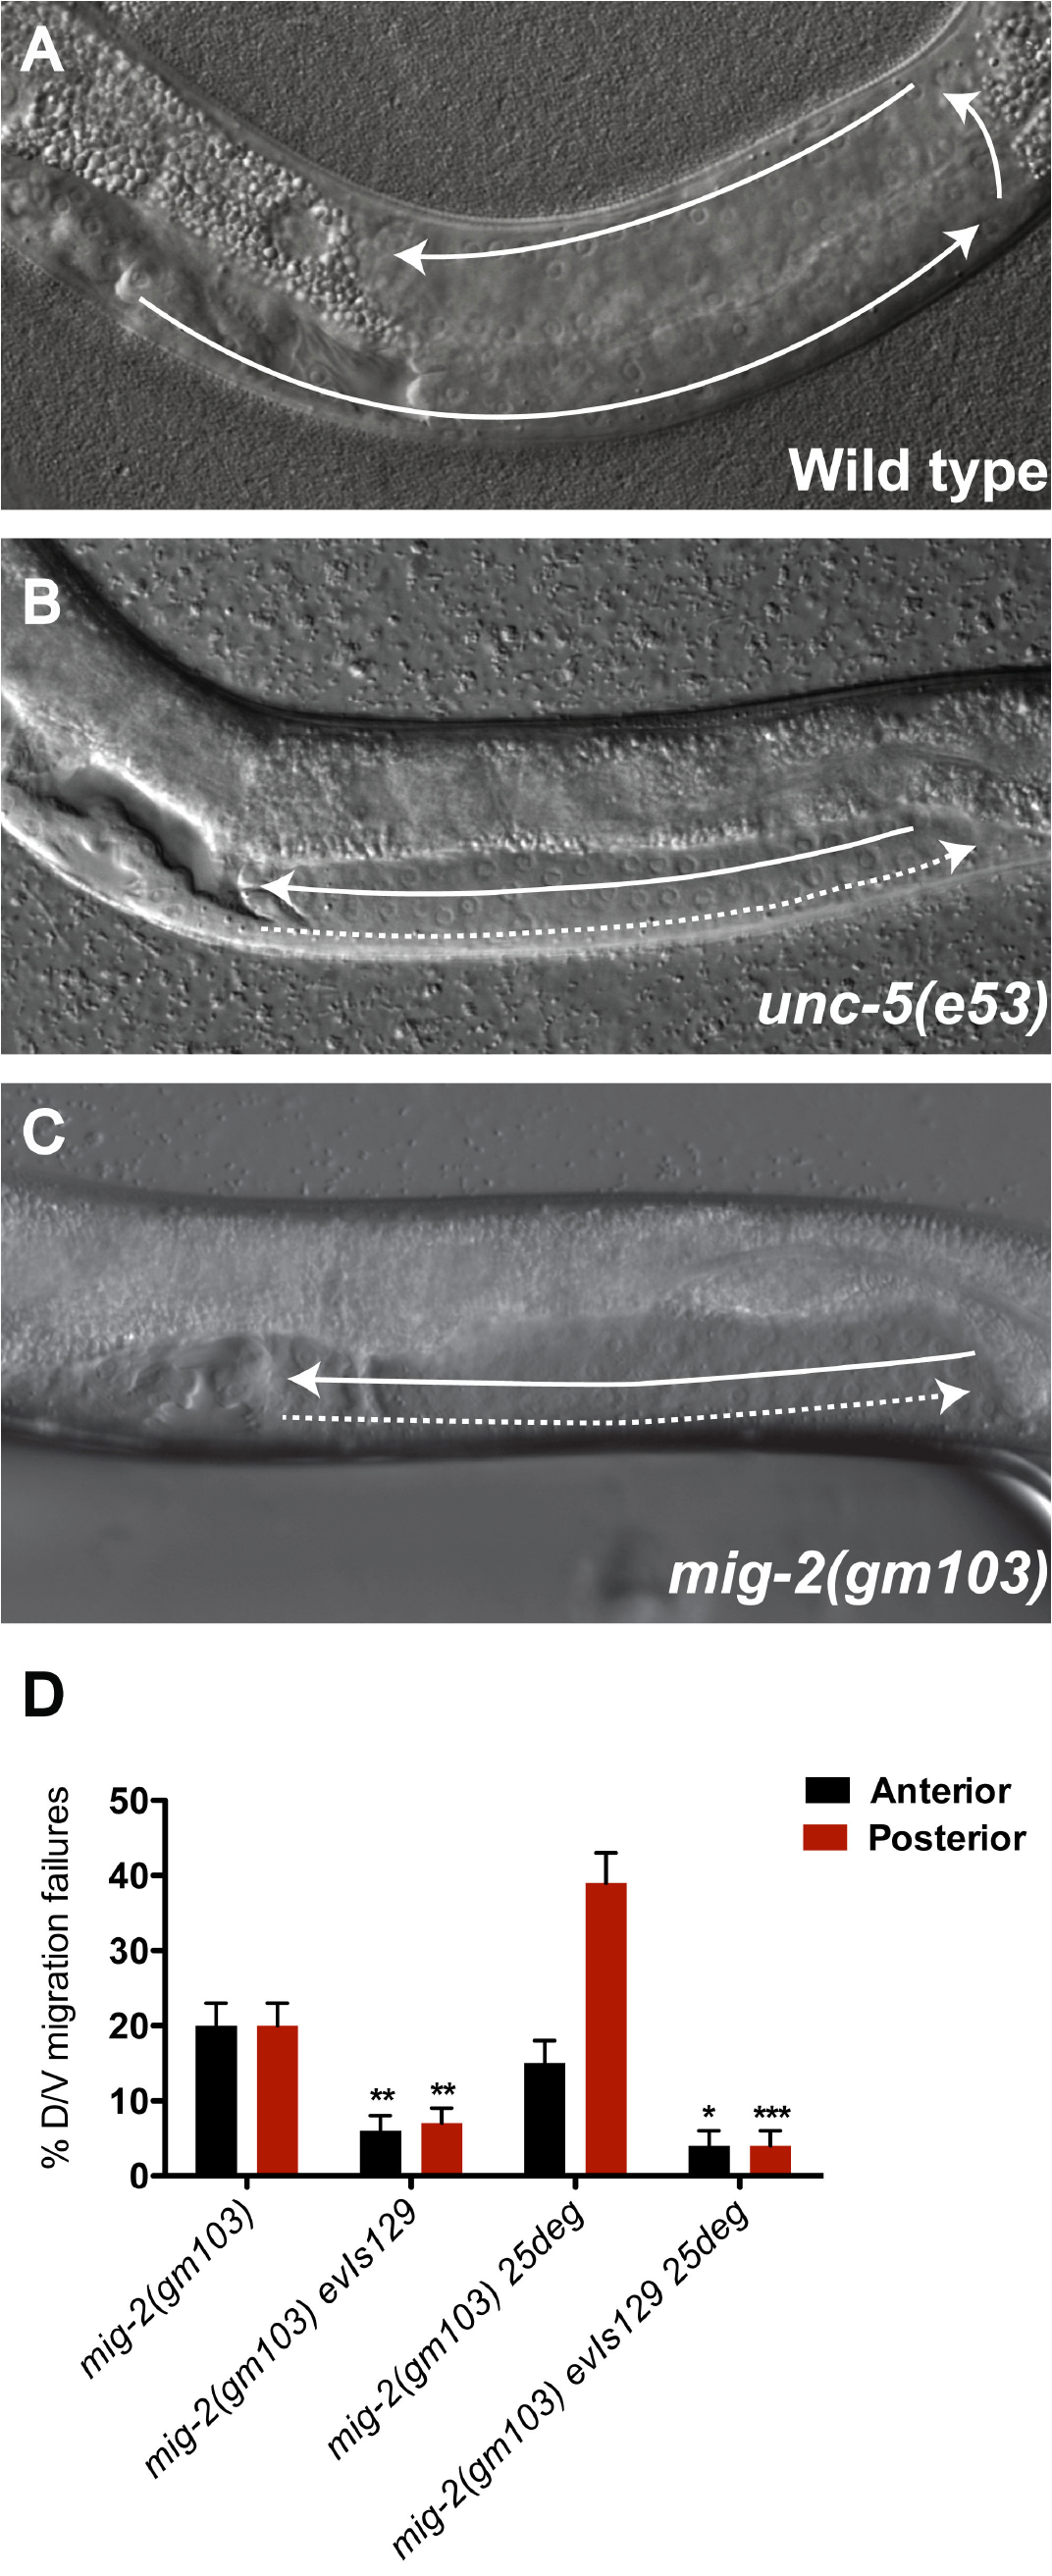 The constitutively active <i>mig-2(gm103)</i> gain-of-function allele displays <i>unc-5</i> mutant-like phase 2 D/V migration failures suppressed by over-expressing <i>unc-5(+)</i> in the DTCs.